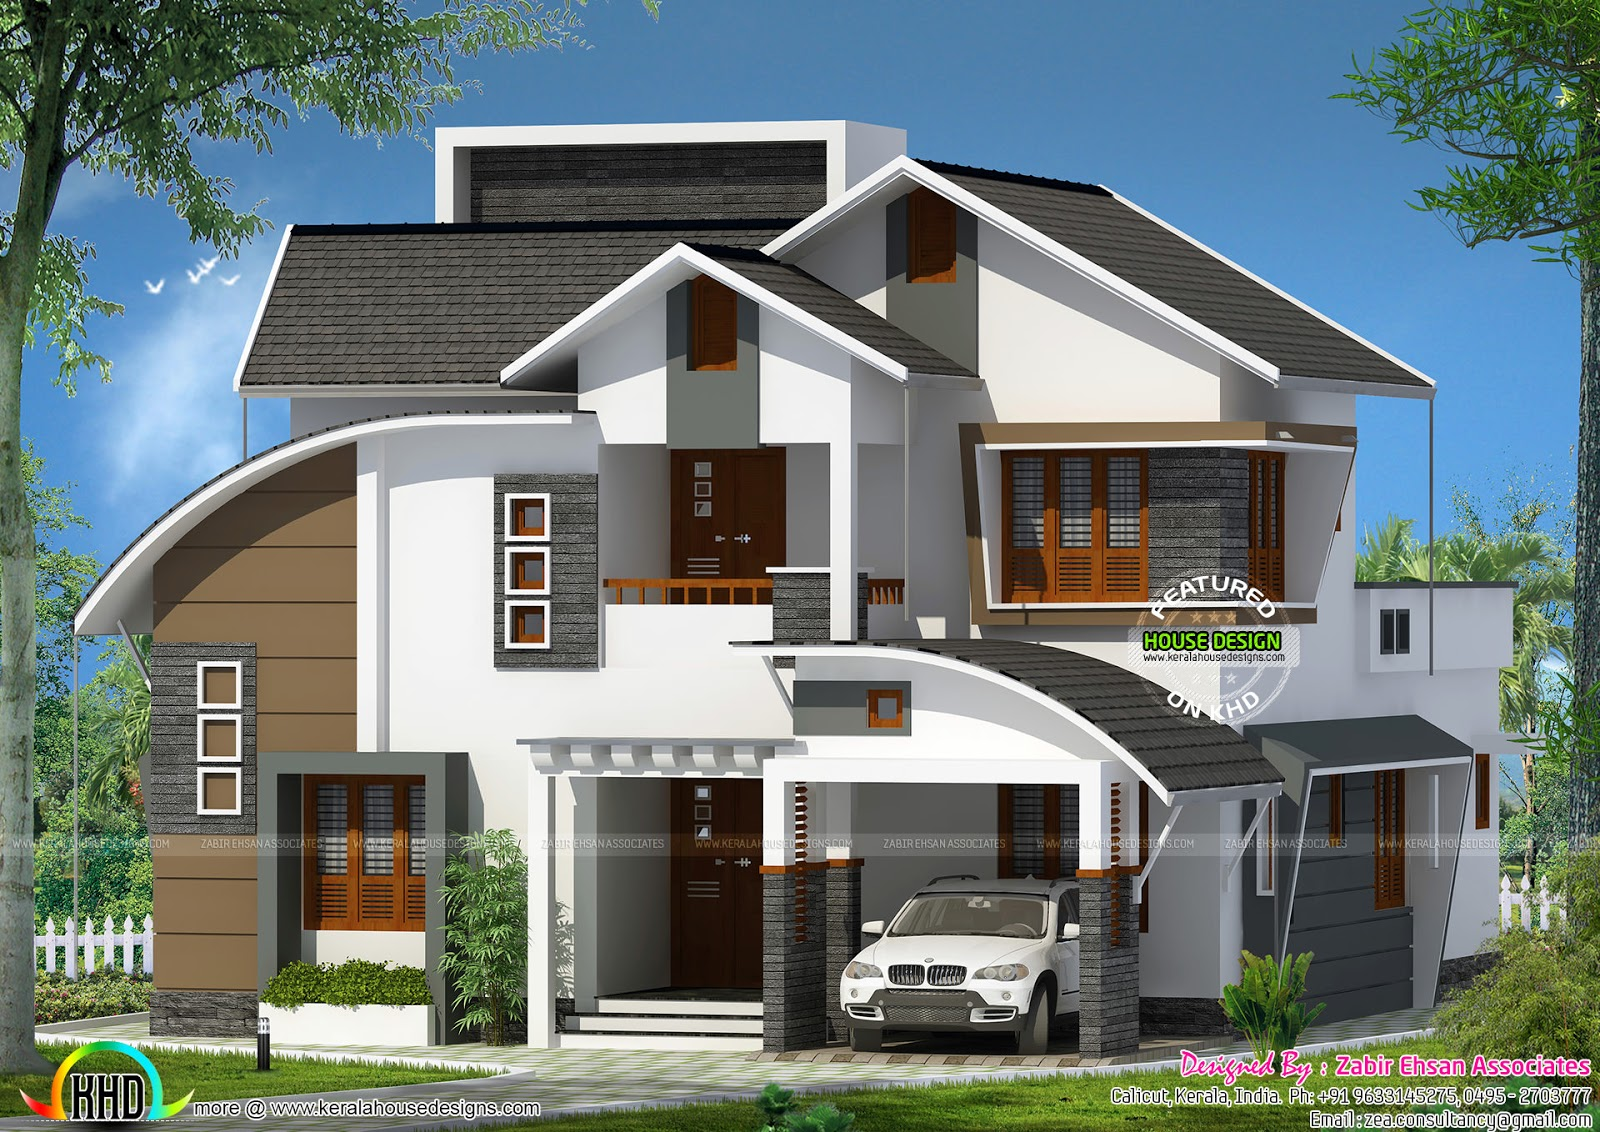 all mix roof house plan by zabir ehsan associates kerala